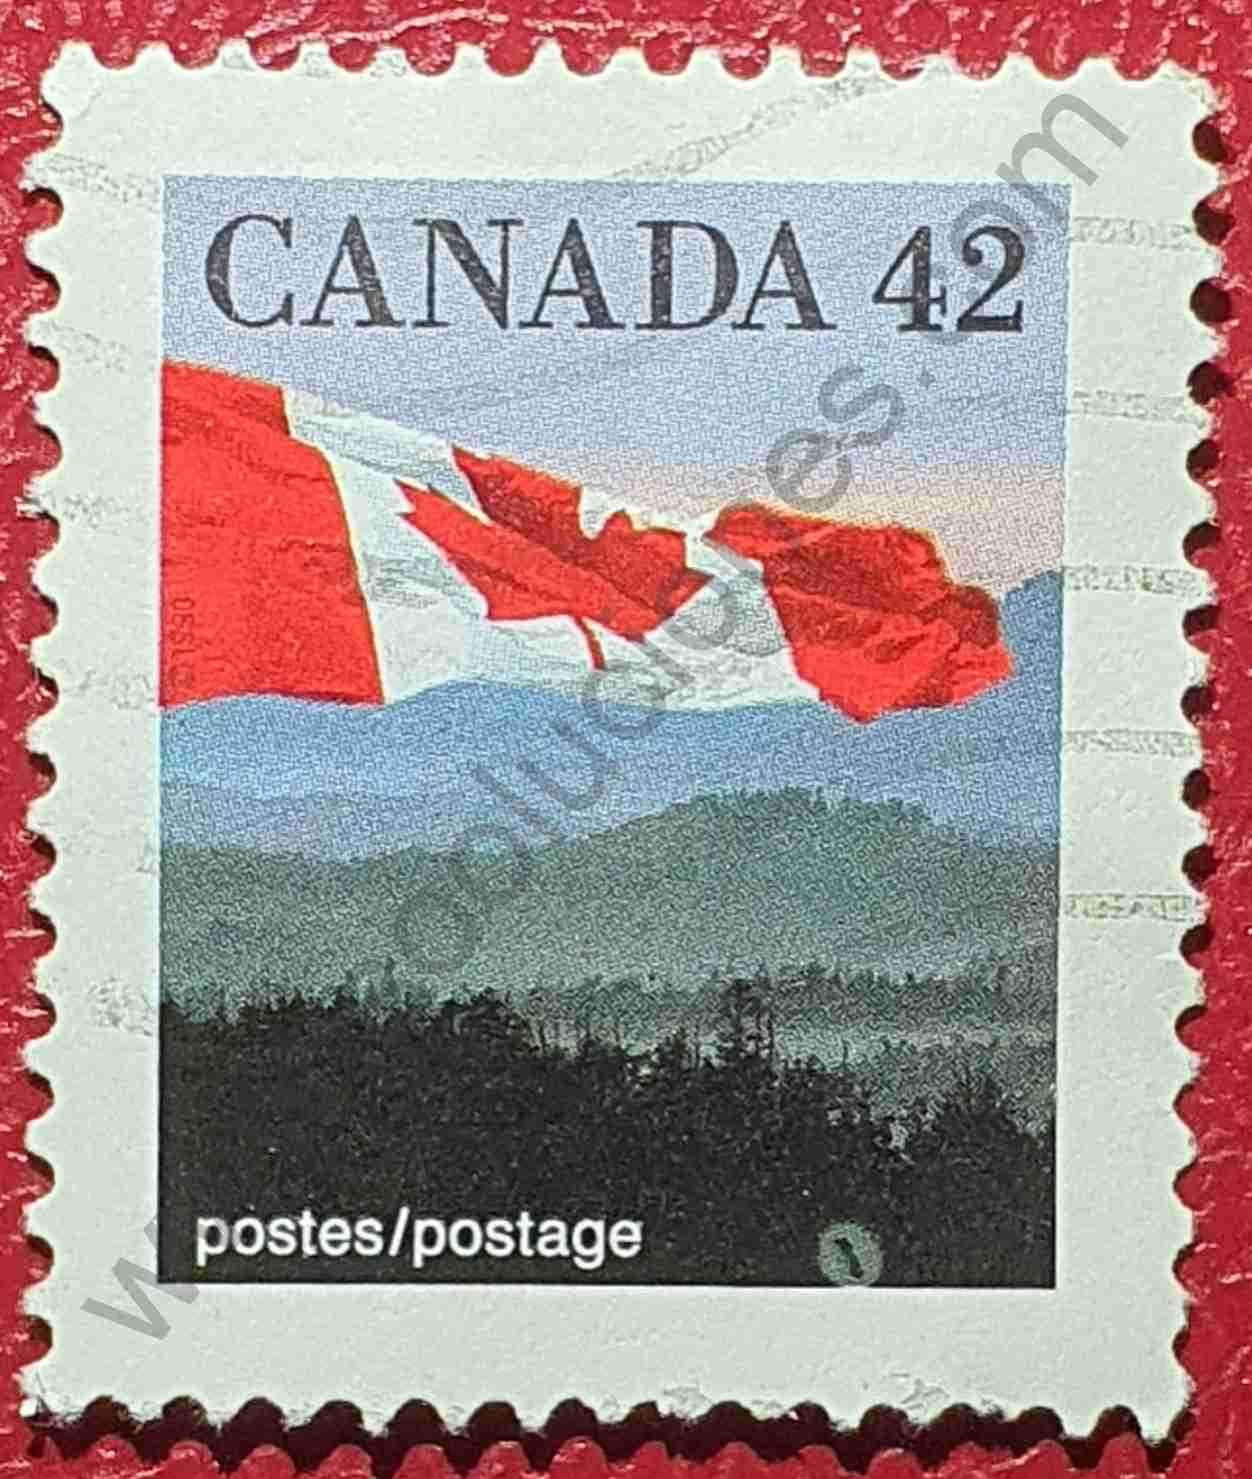 Bandera canadiense y colinas - sello de 1991